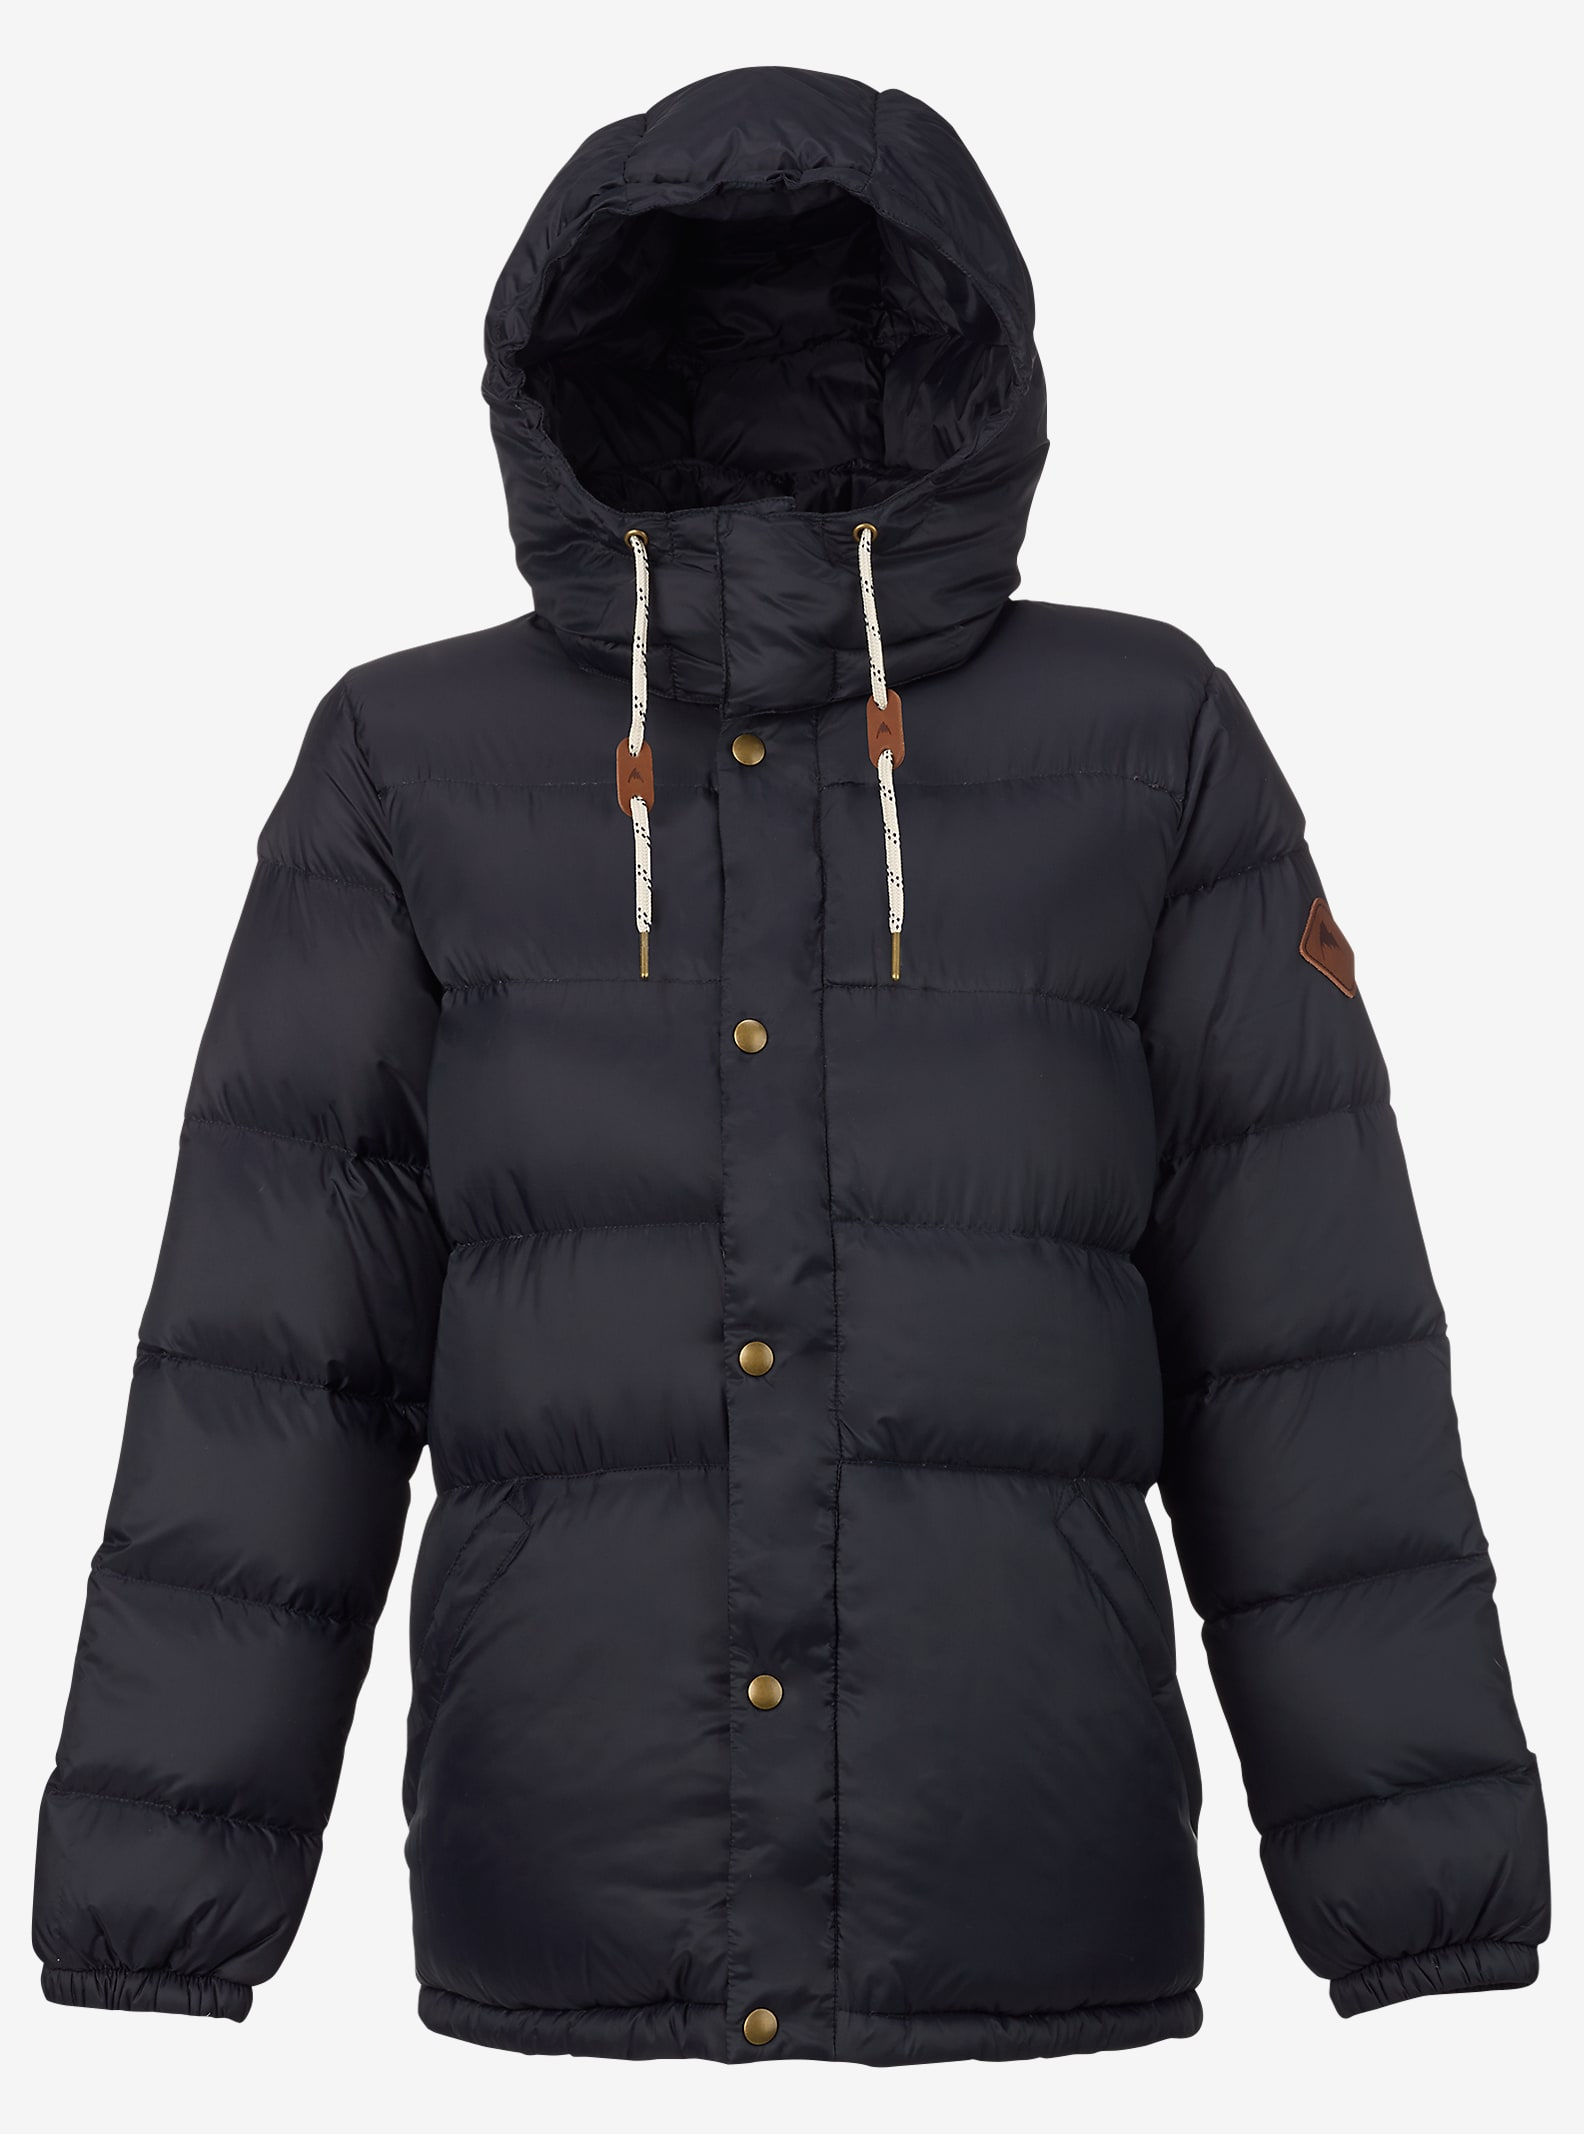 Burton Heritage Down Jacket shown in True Black